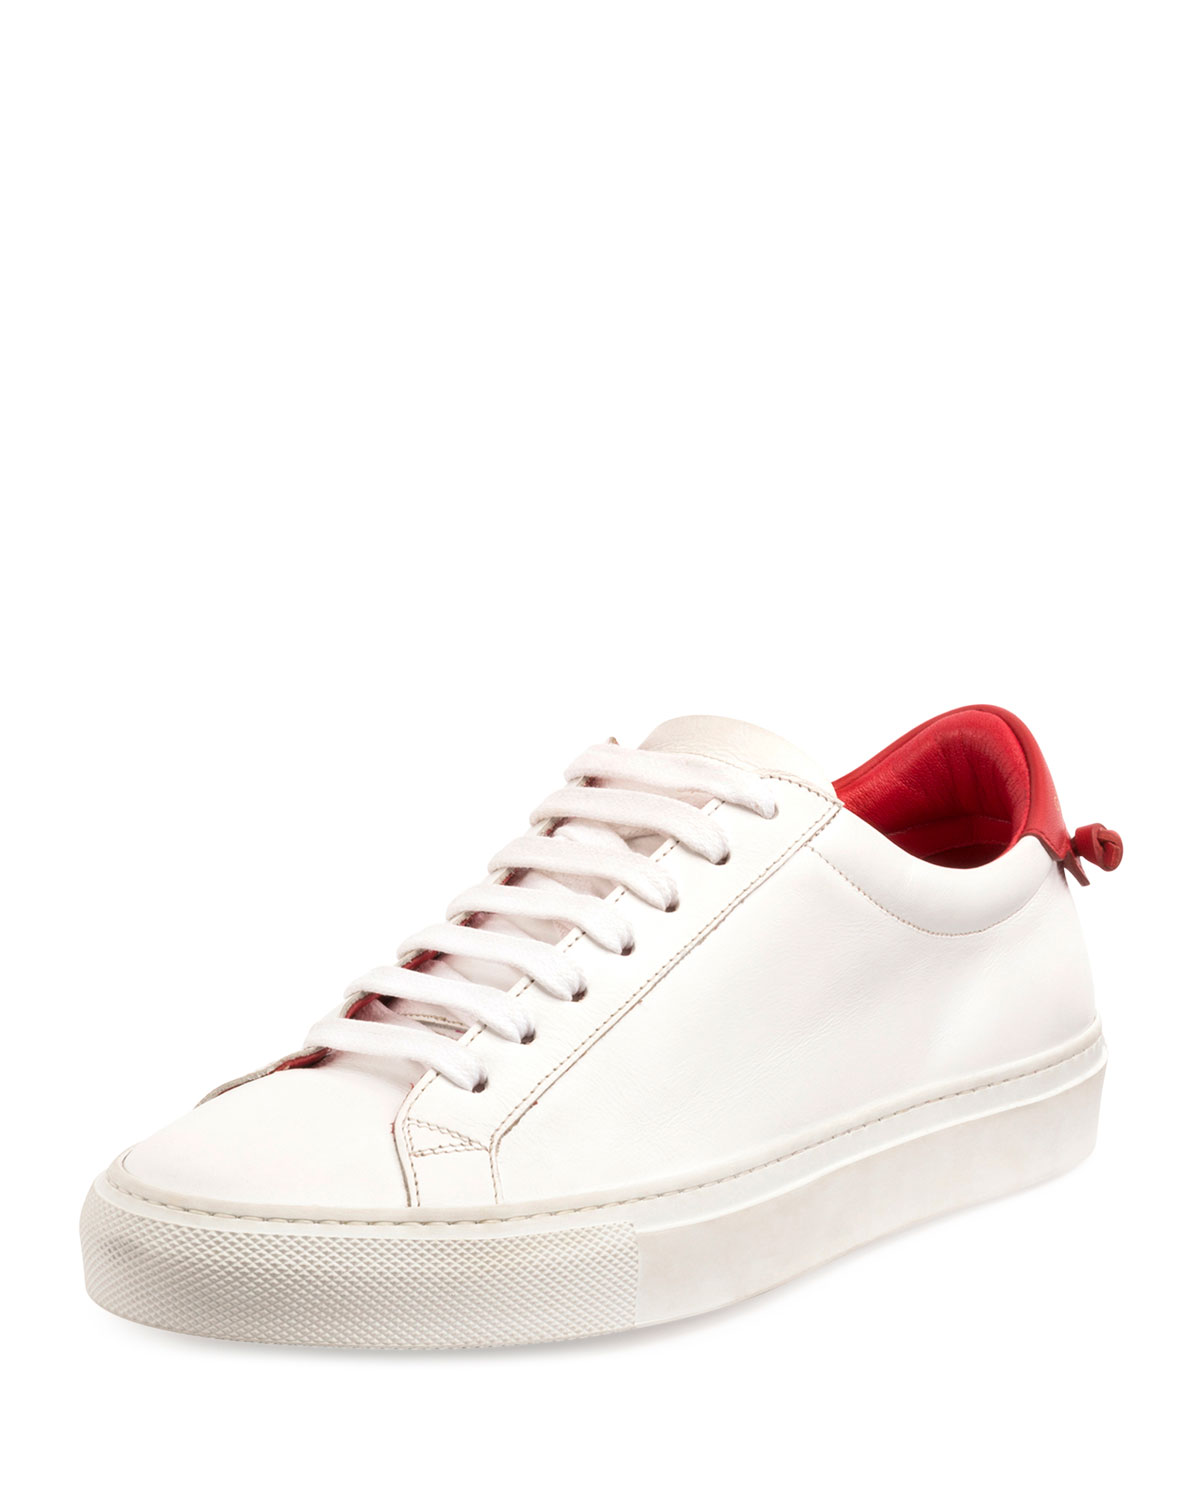 3ccd5c2b0152 Givenchy Urban Street Leather Low-Top Sneaker